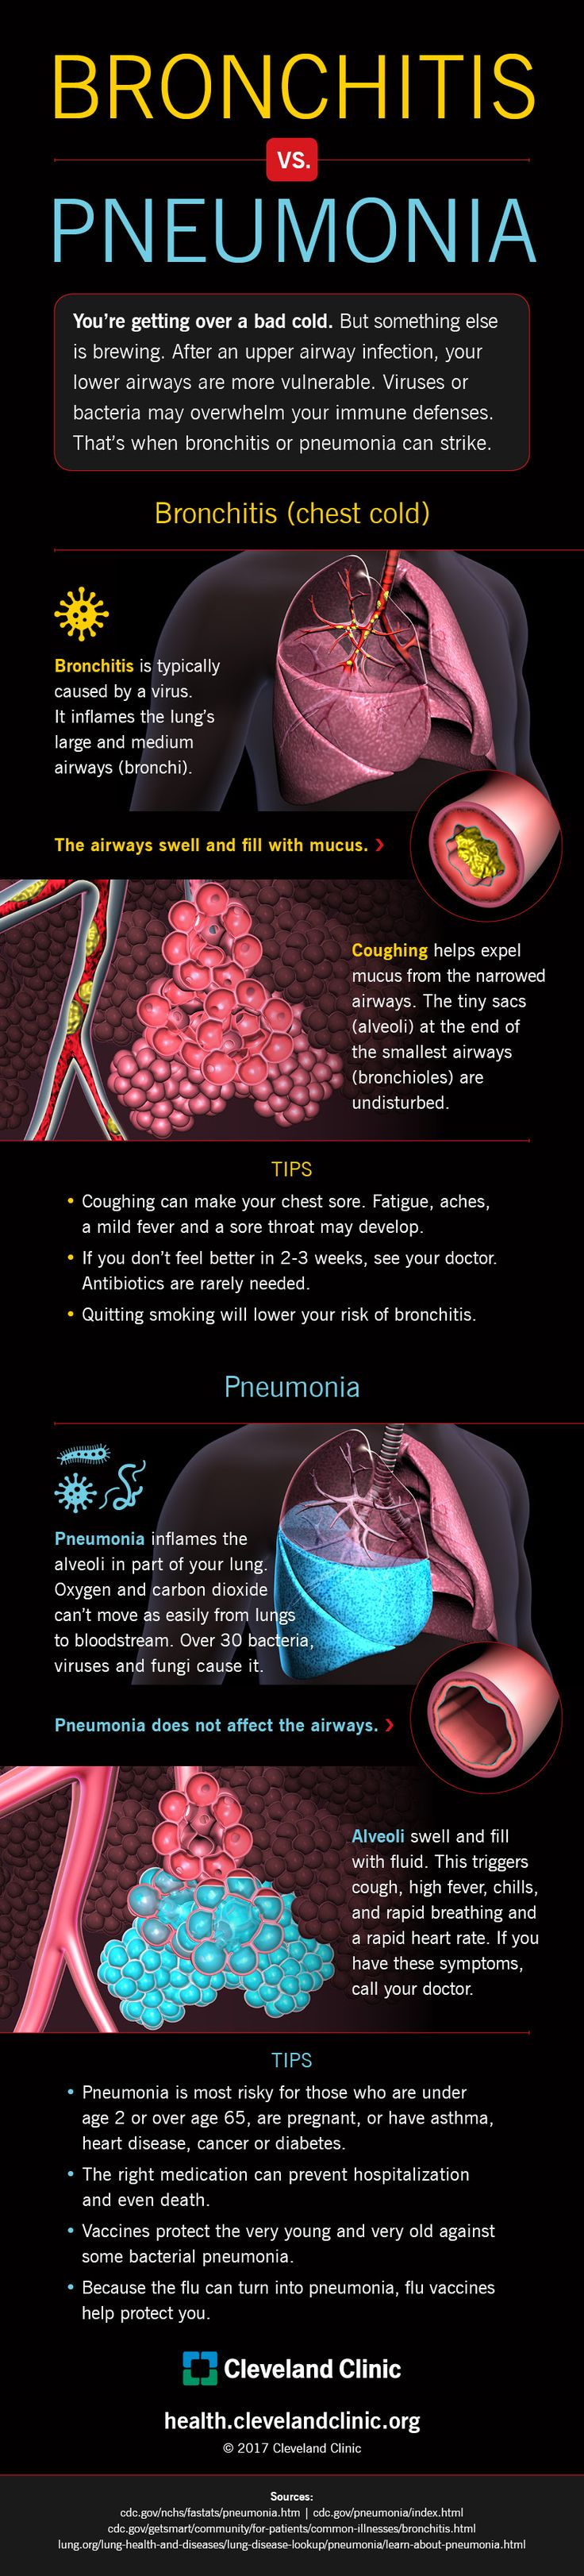 17-HMED-2261-Bronchitis-vs-Pneumonia-Infographic-FNL